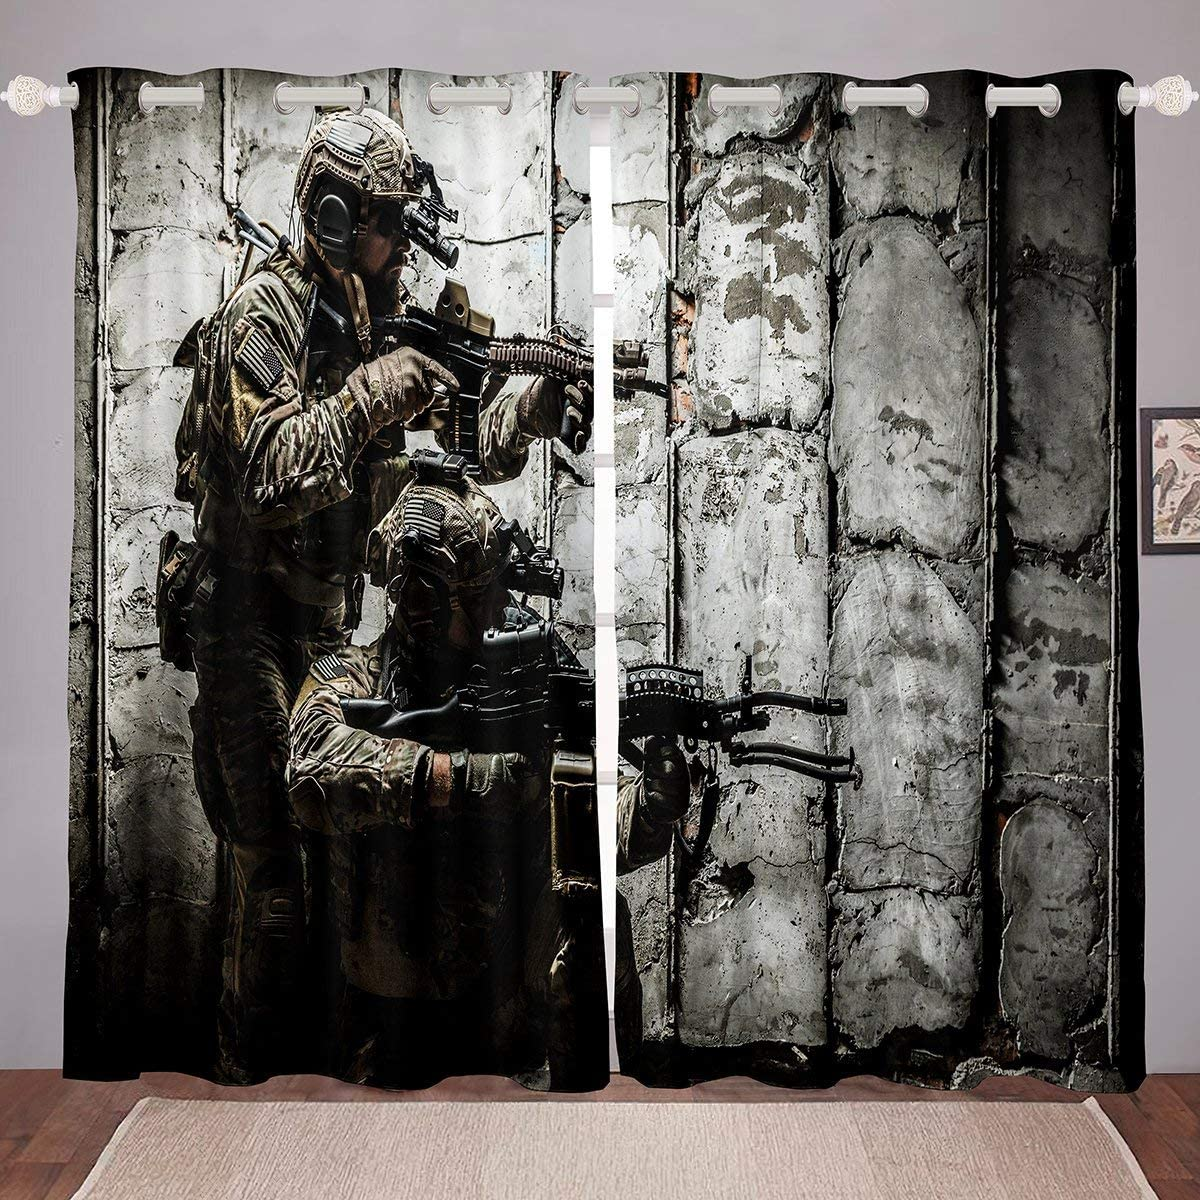 Soldier With Weapon Curtain Panels, Boys Teens Under Mission Window Drapes, Army Rifle Machine Gun Window Treatments, Military Themed Window Curtains 104W84L Camouflage Bedroom Decor For Youth Man